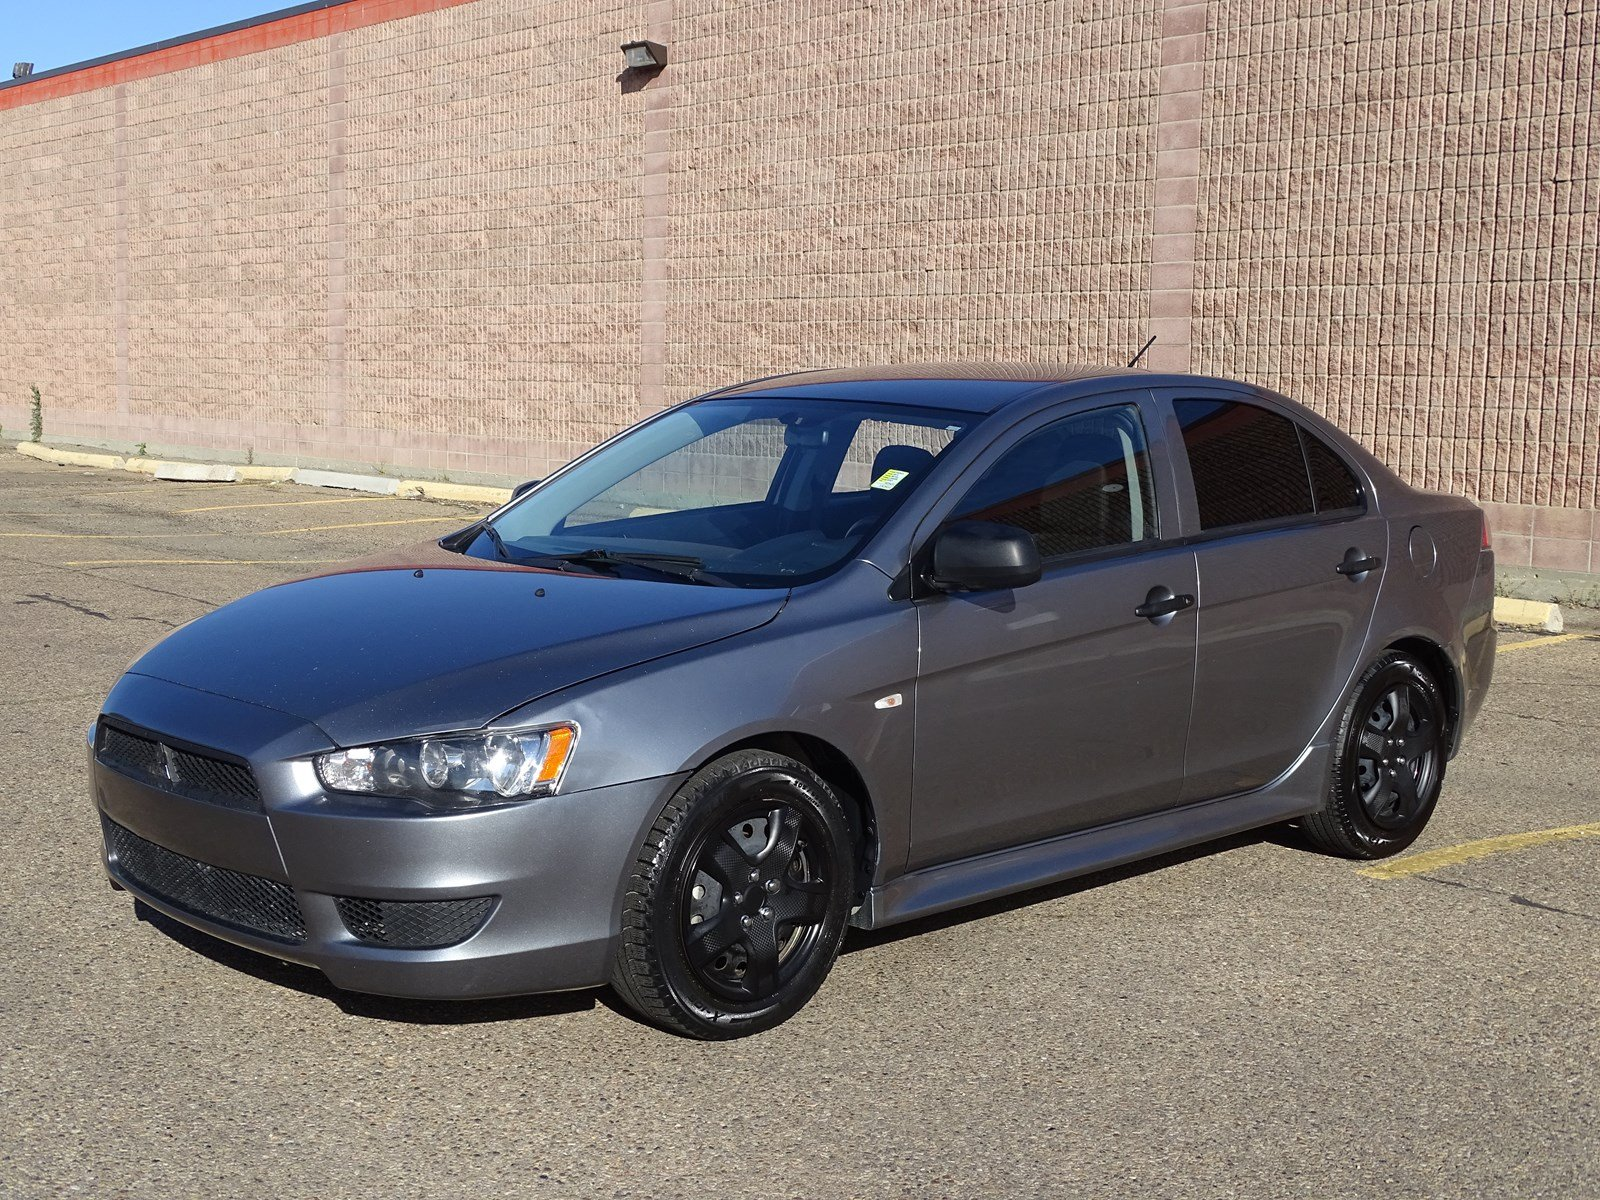 Pre Owned 2013 Mitsubishi Lancer ES Finance $74 Bw